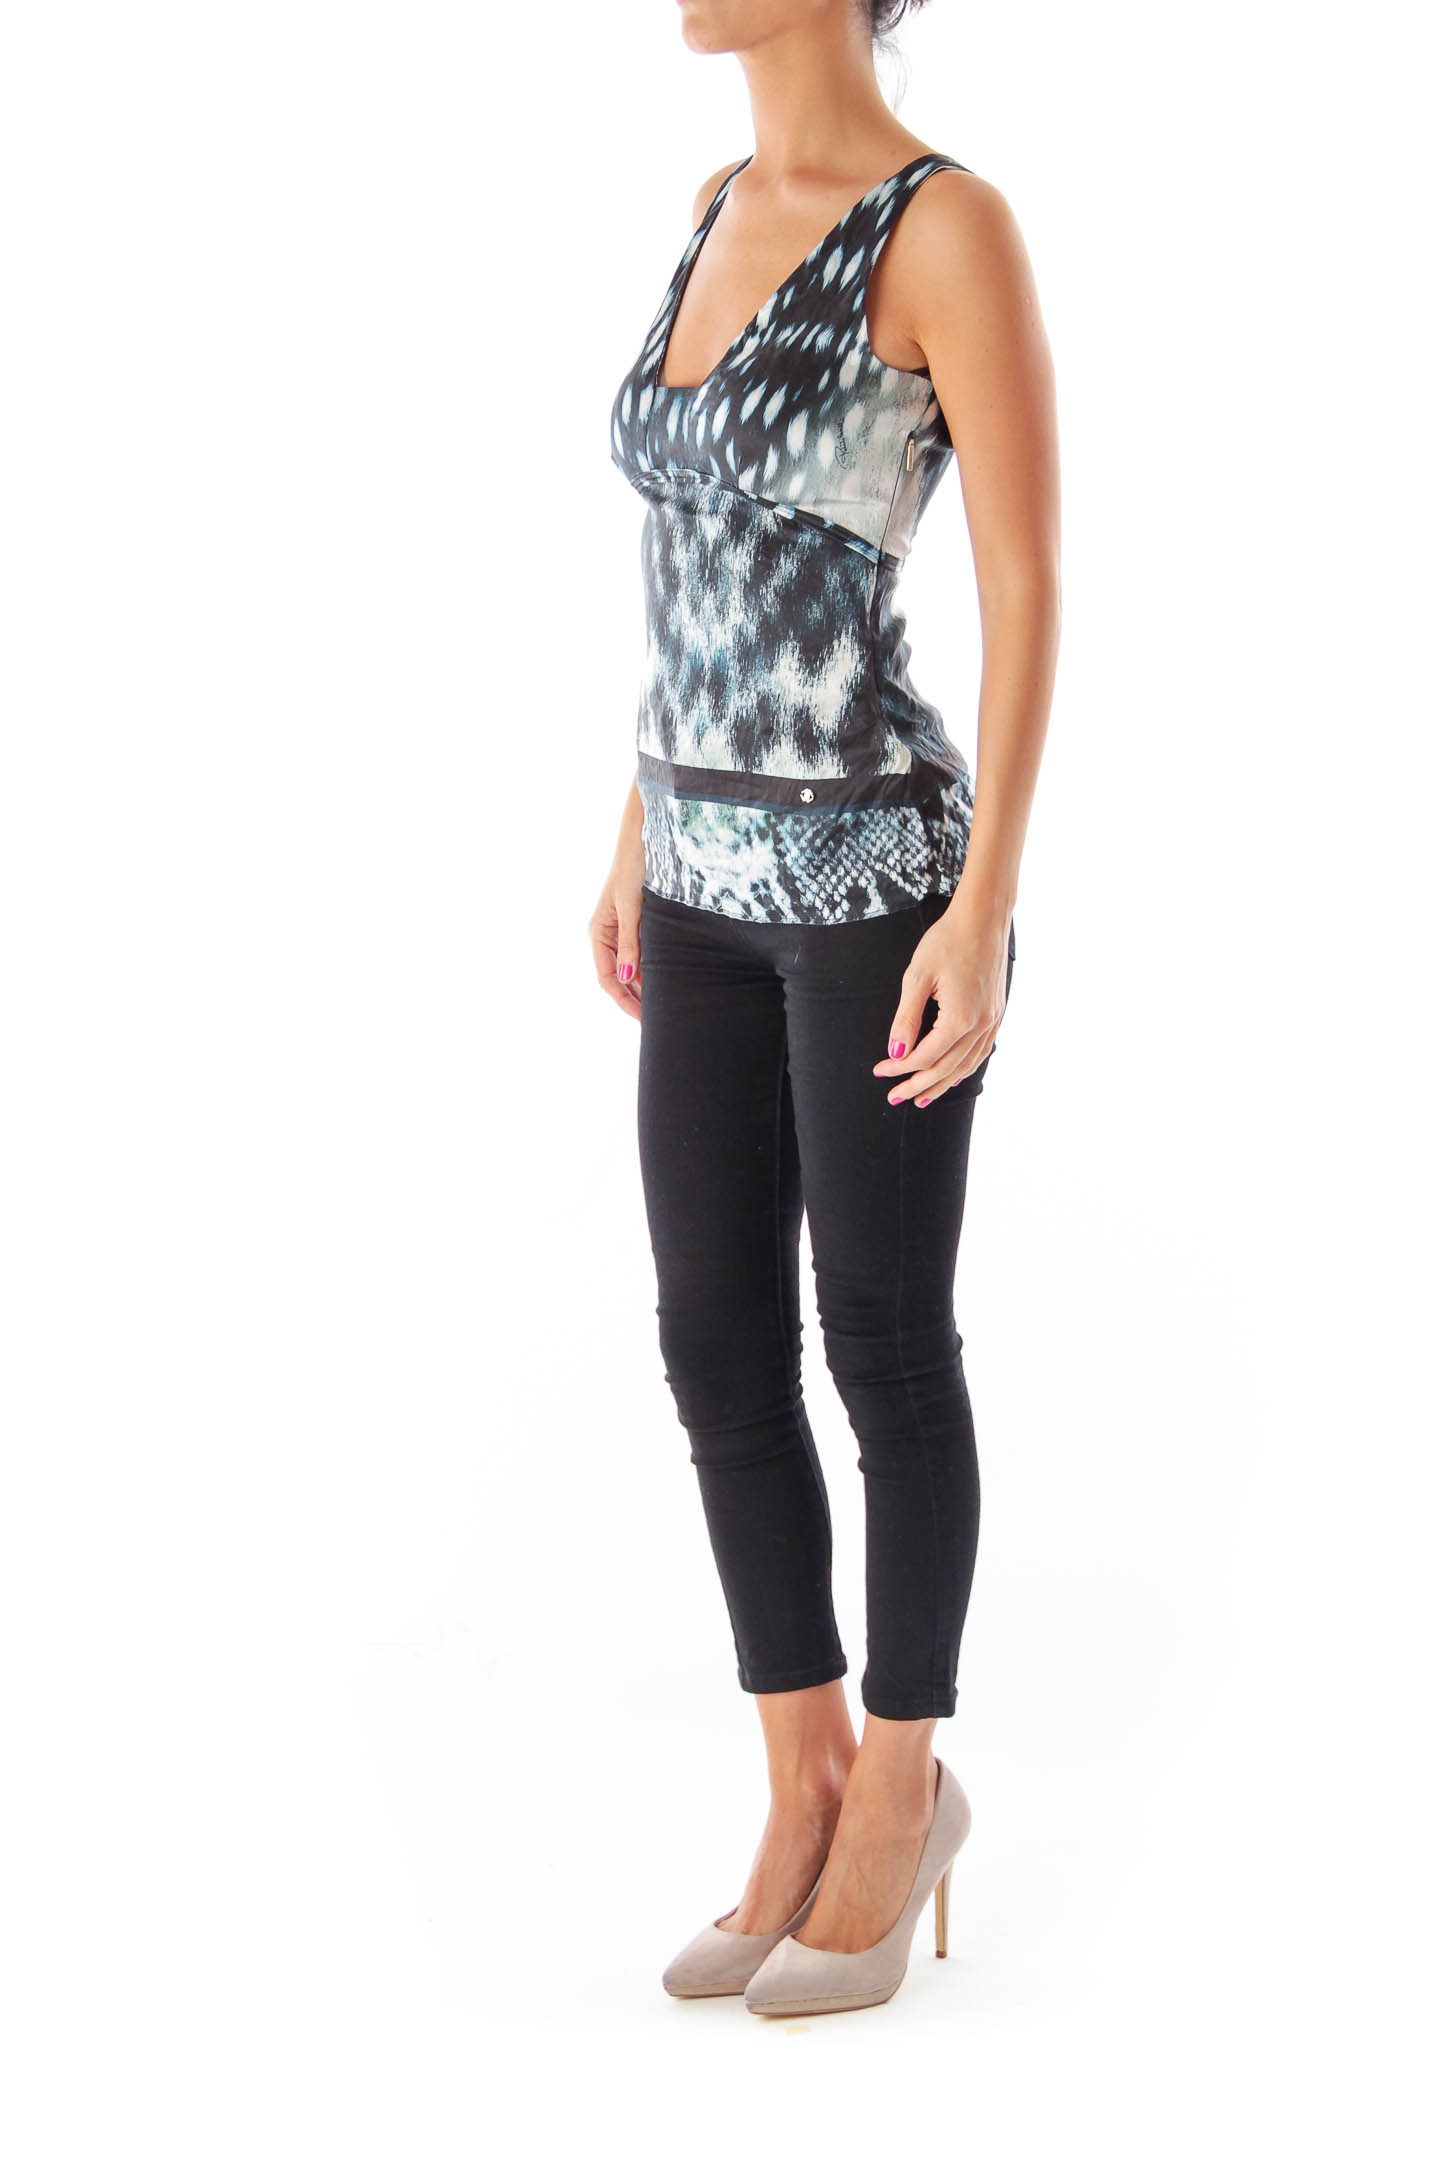 Blue & Black & White Print Top